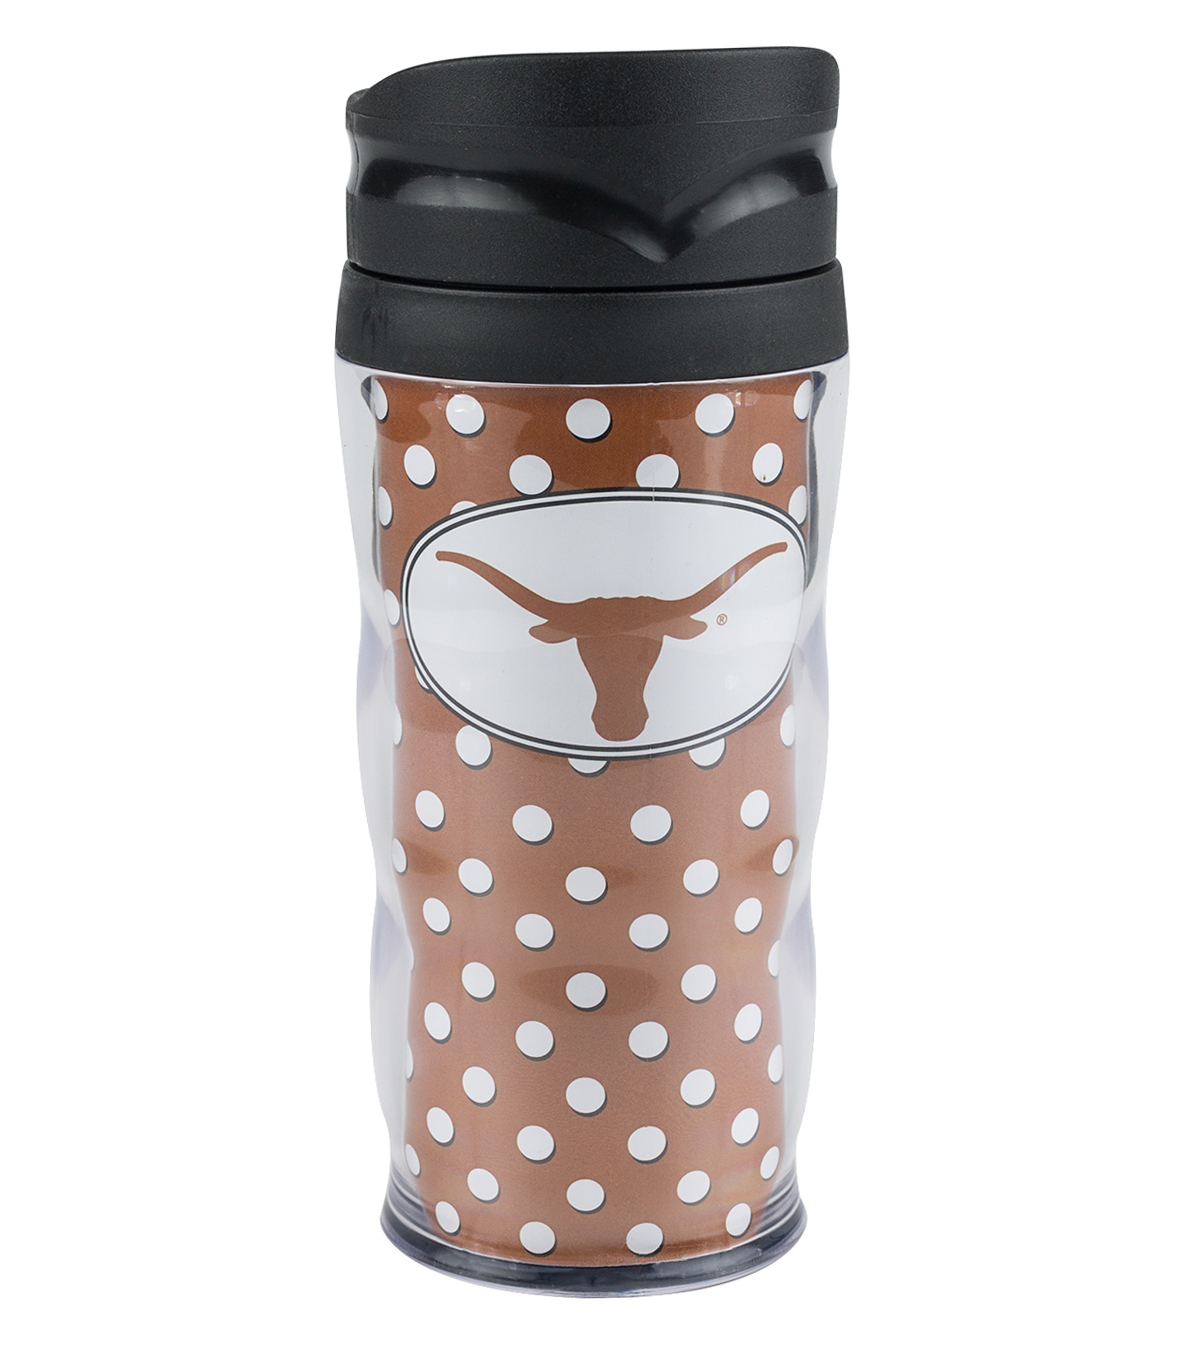 University of Texas Longhorns Polka Dot Travel Mug